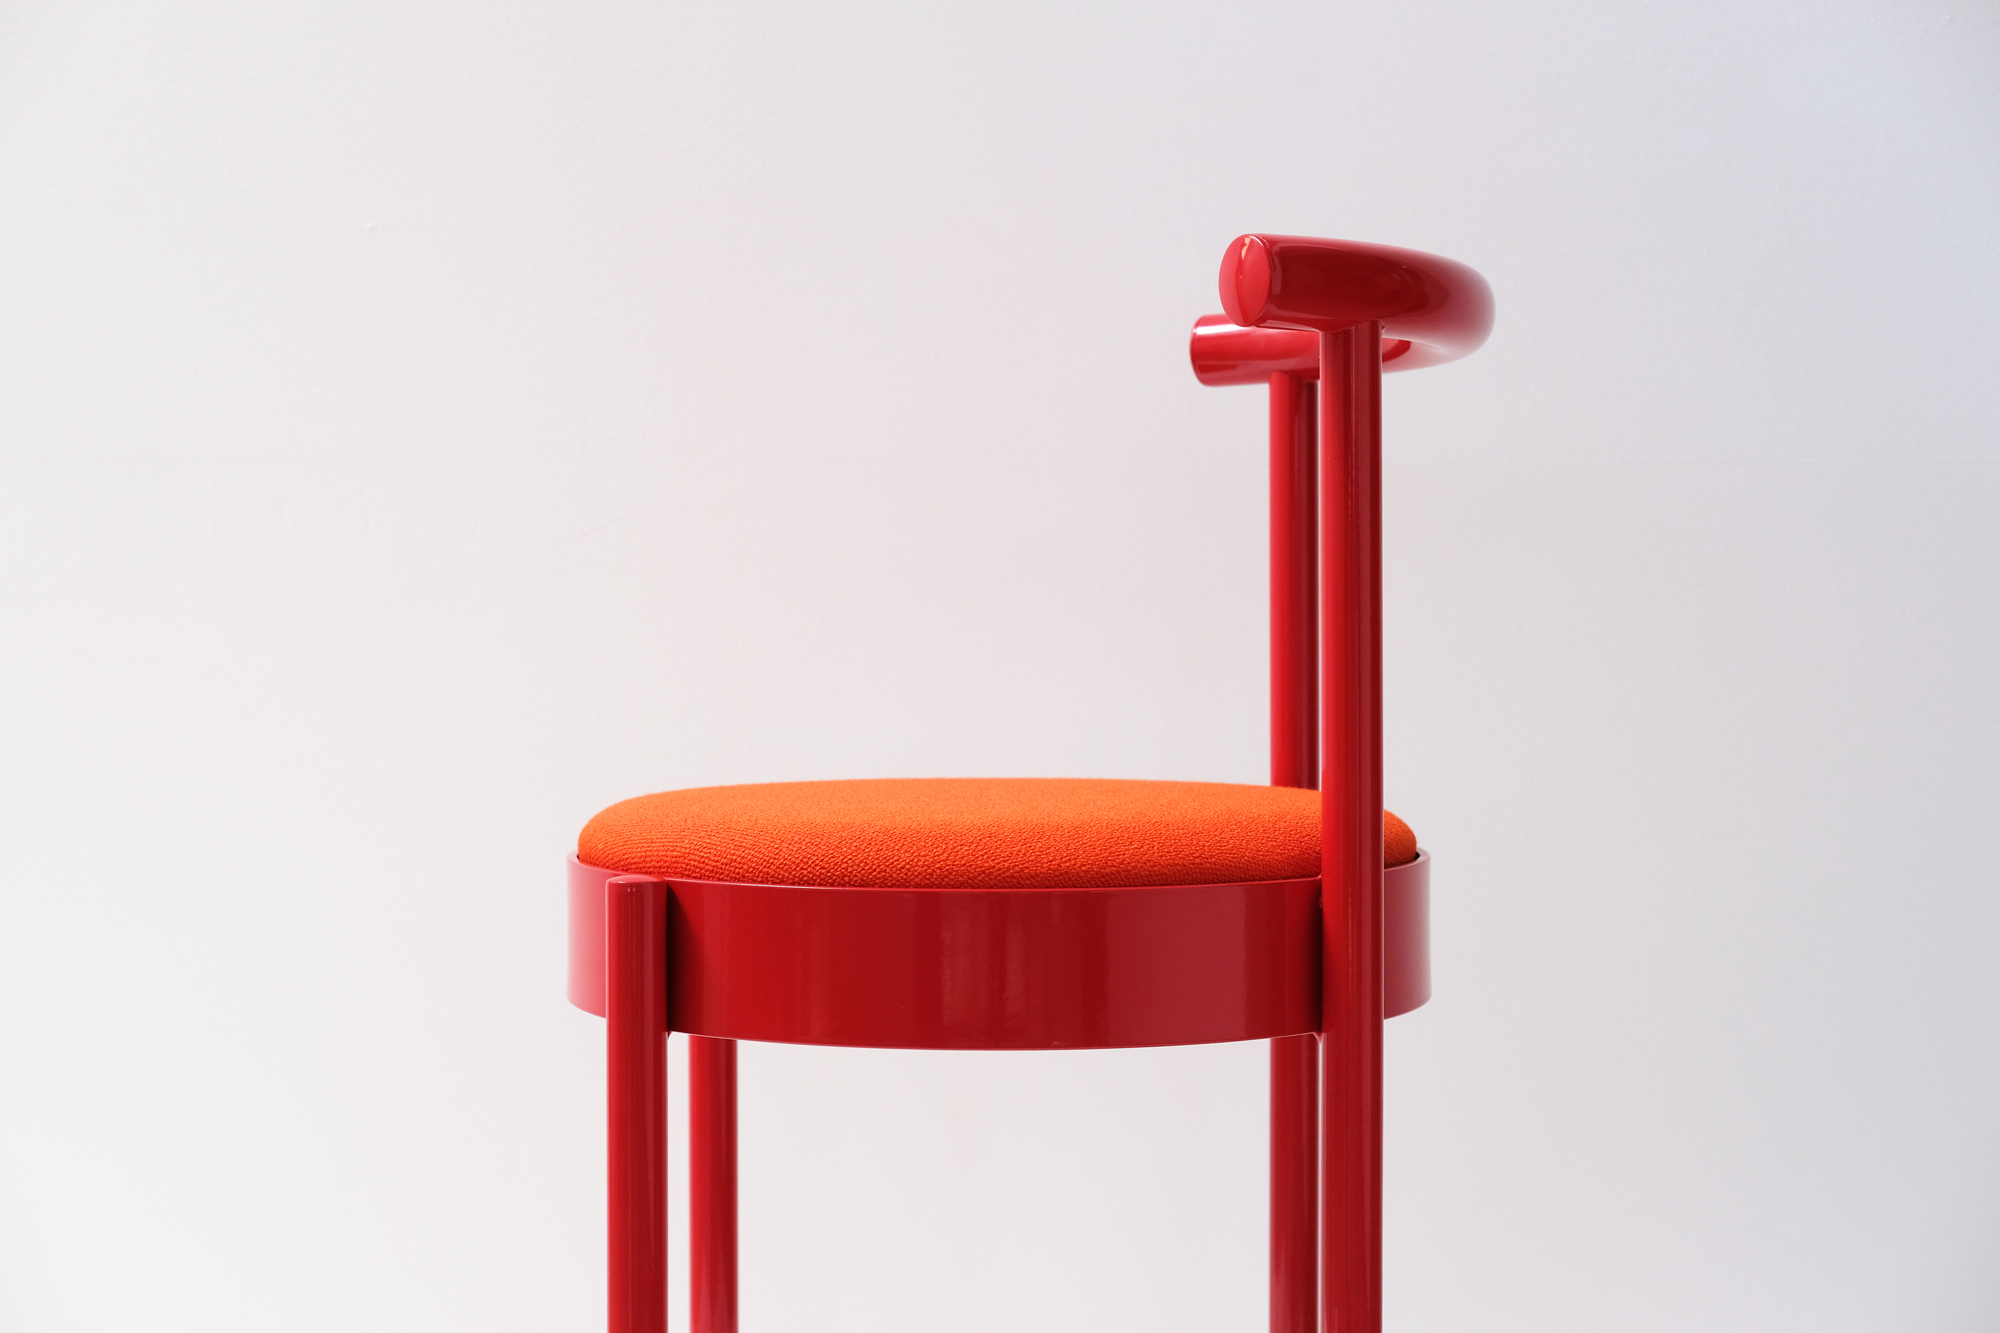 Soft Chair by Daniel To & Emma Aiston